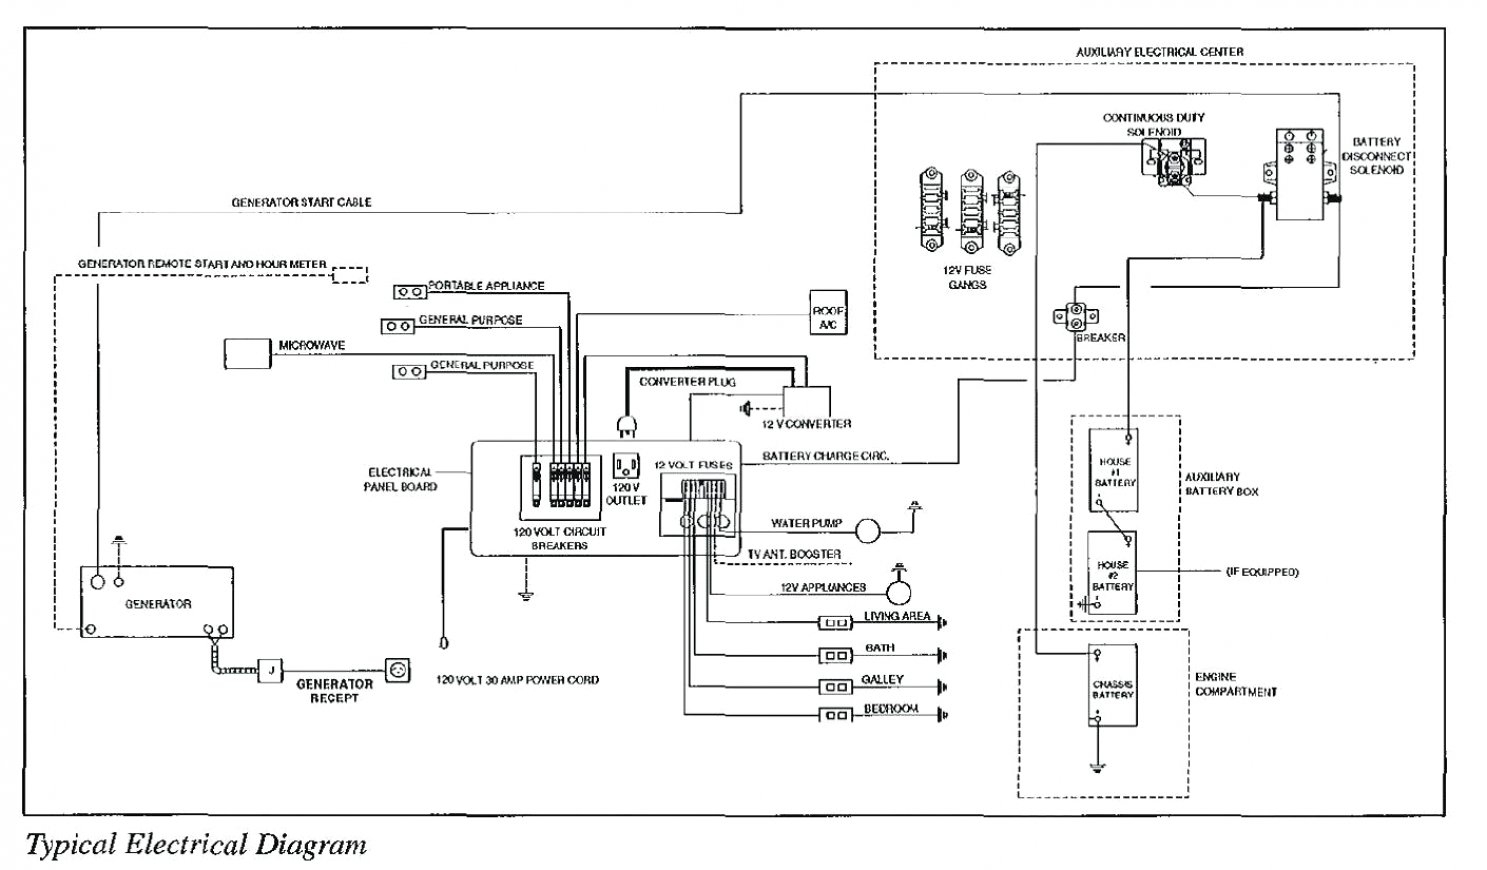 Rv Electrical Wiring Diagram | Wiring Diagram - Amp Research Power Step Wiring Diagram